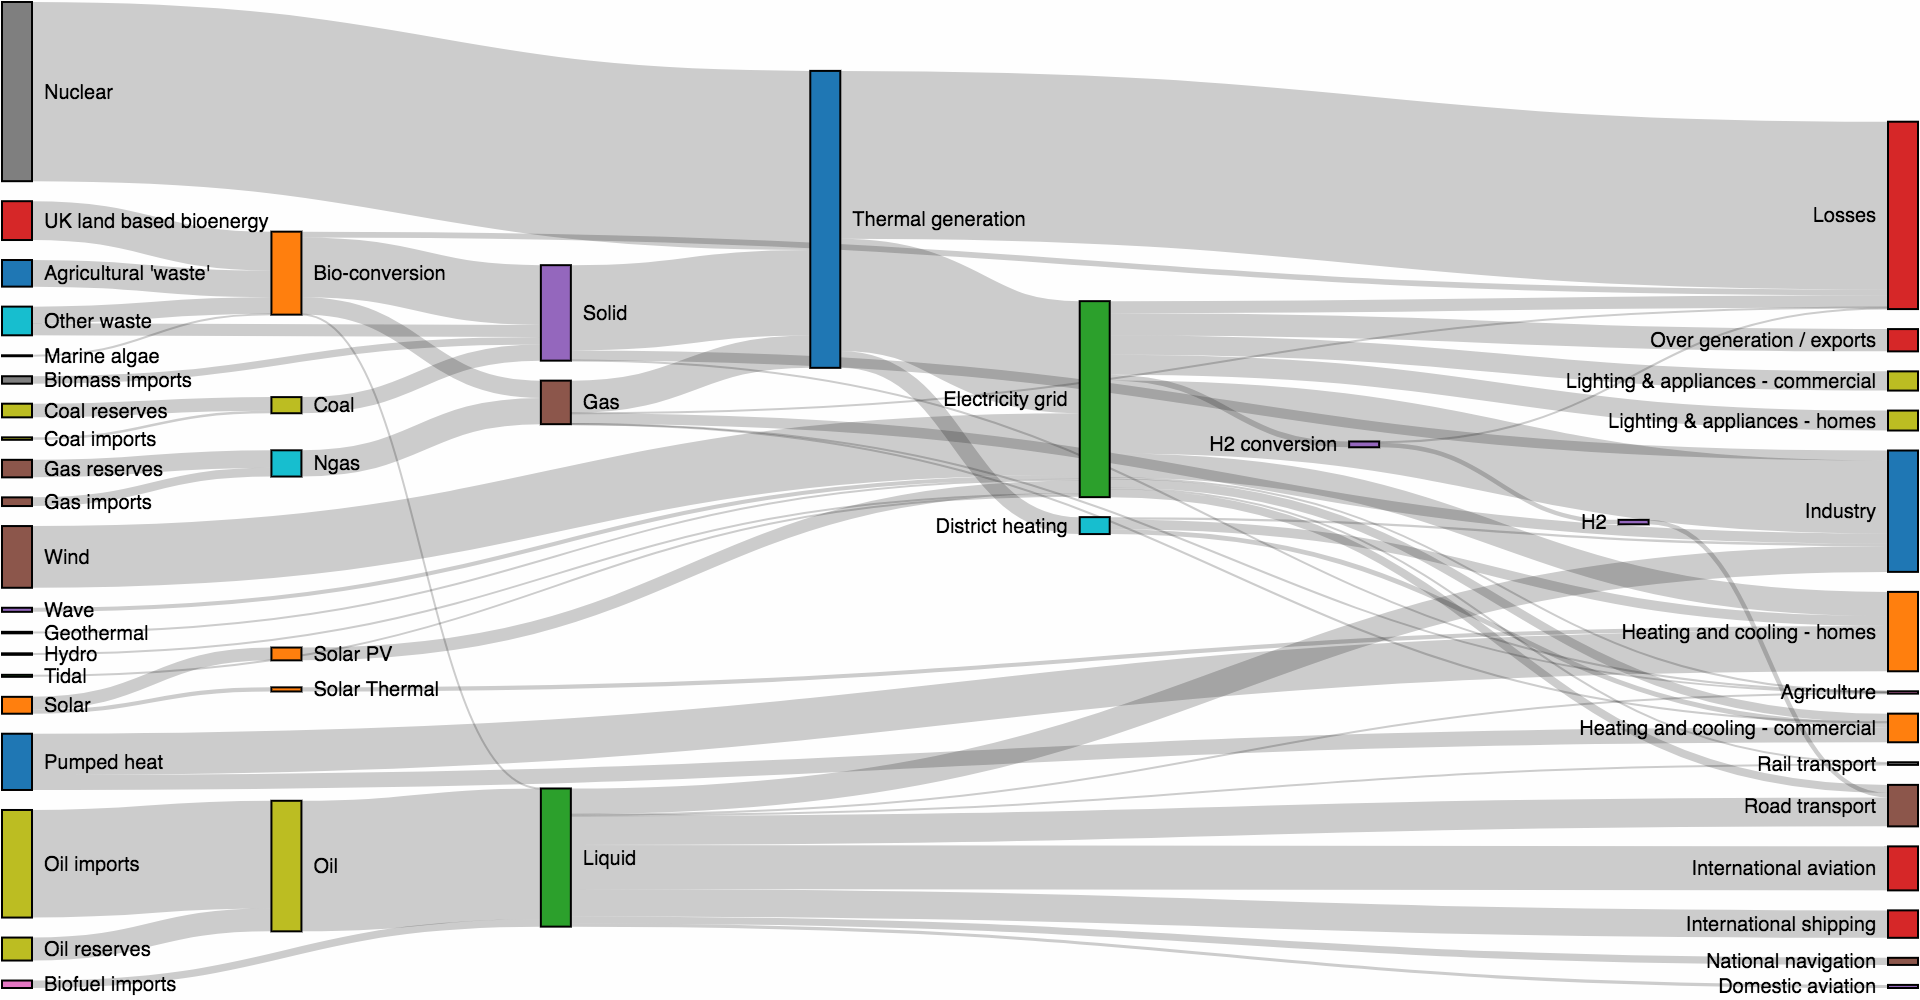 how to do a sankey diagram wiring plug what s good tool create diagrams quora anychart